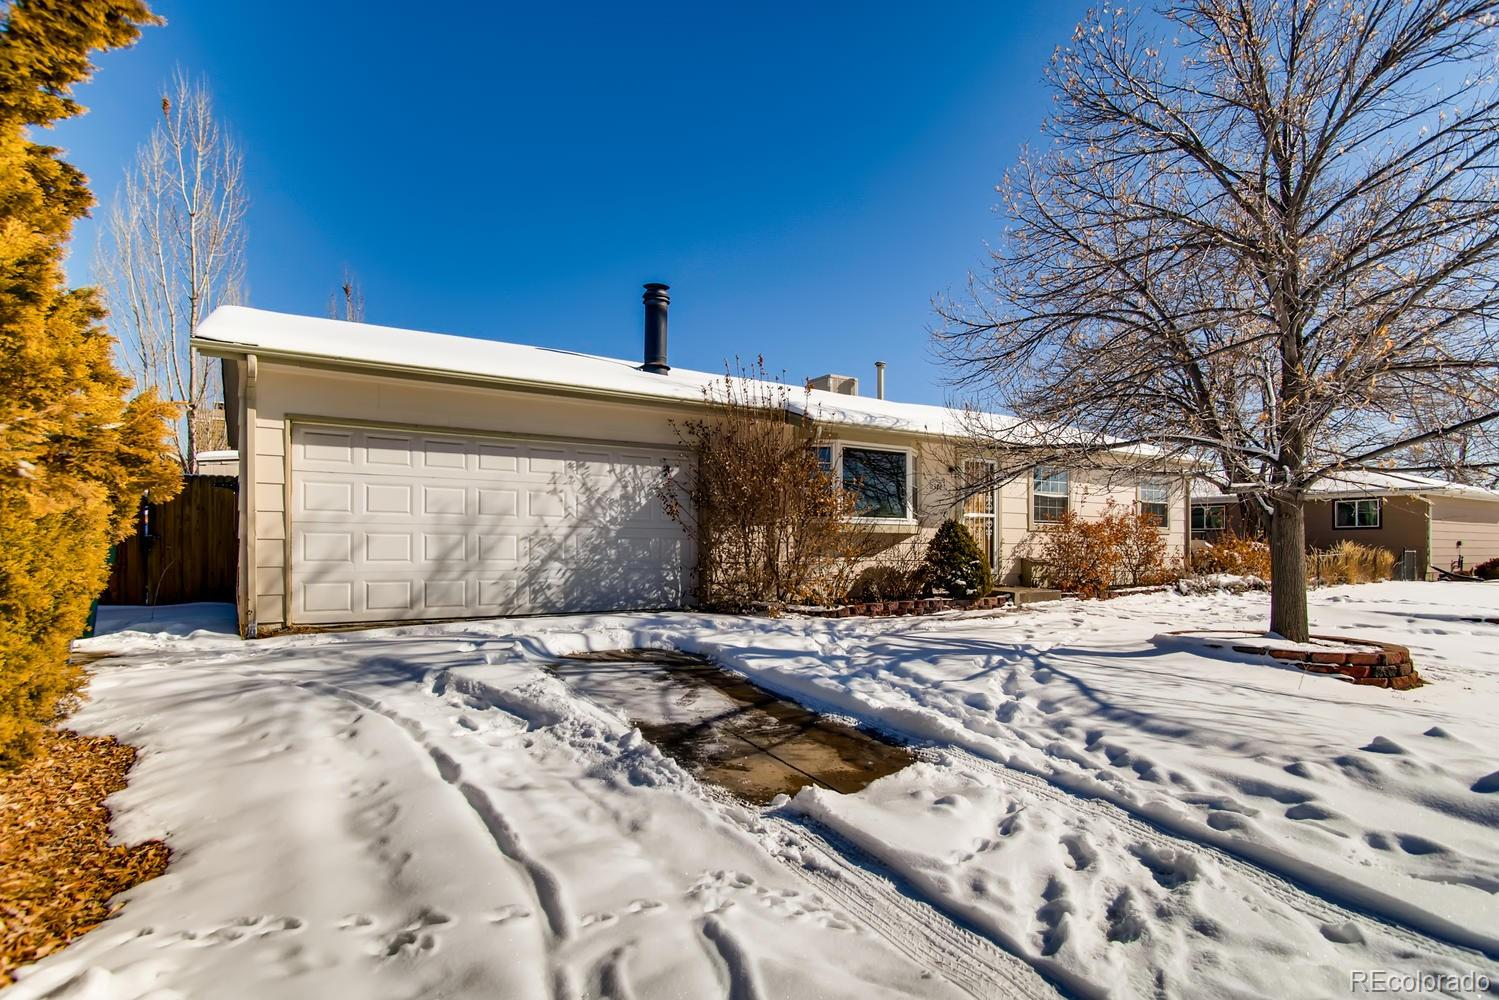 MLS# 7355353 - 2 - 3761 E 89th Place, Thornton, CO 80229